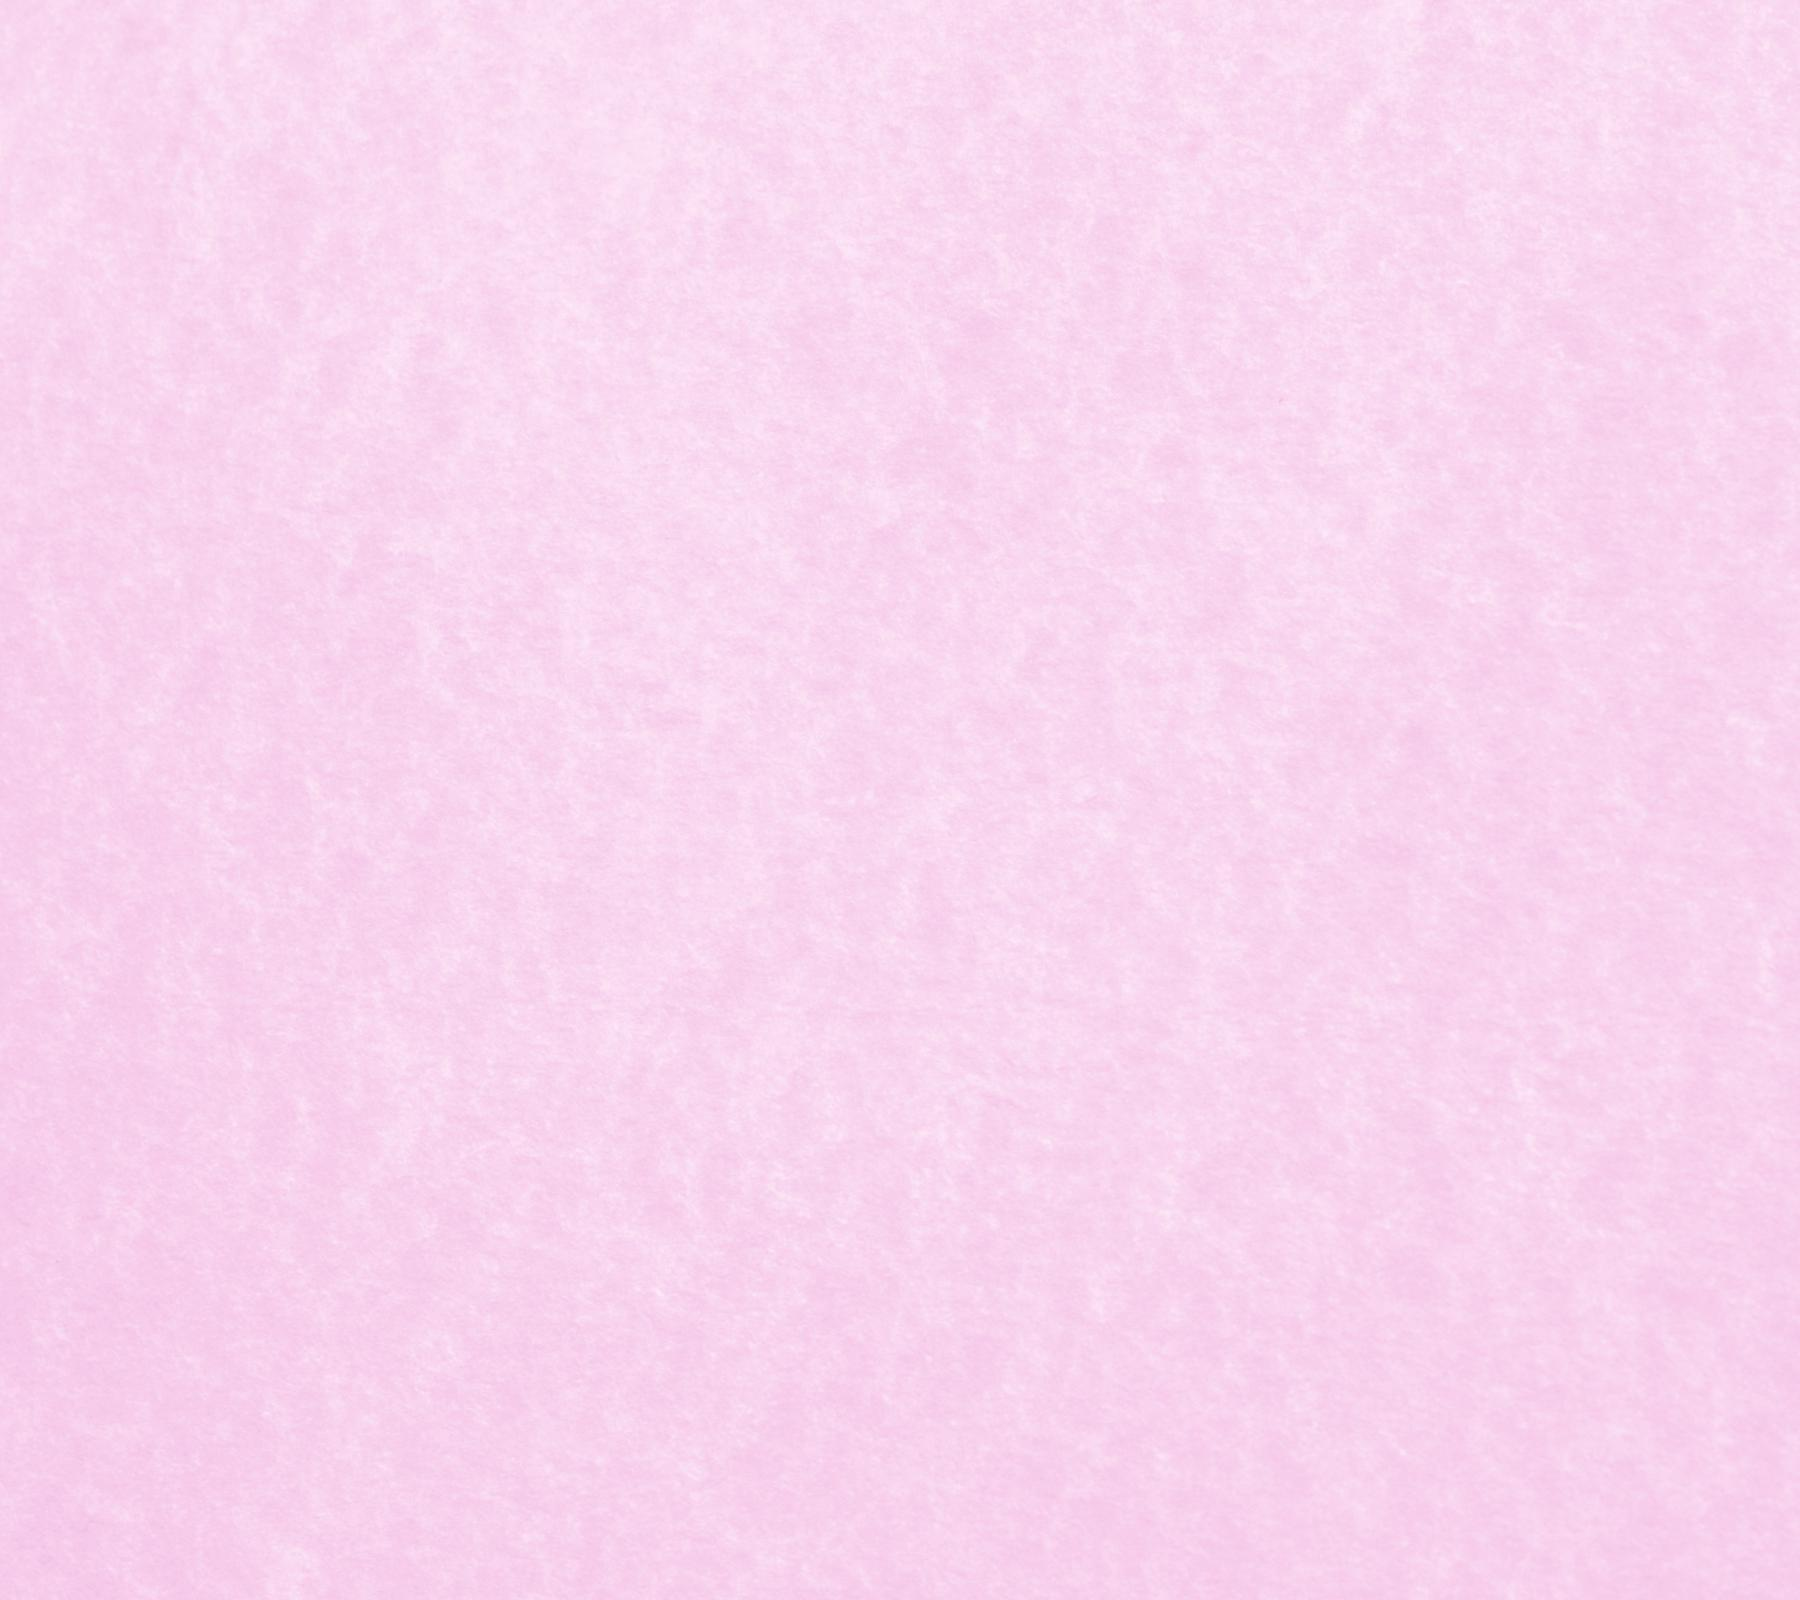 <b>Pink</b> iPhone <b>Wallpaper</b> - WallpaperSafari